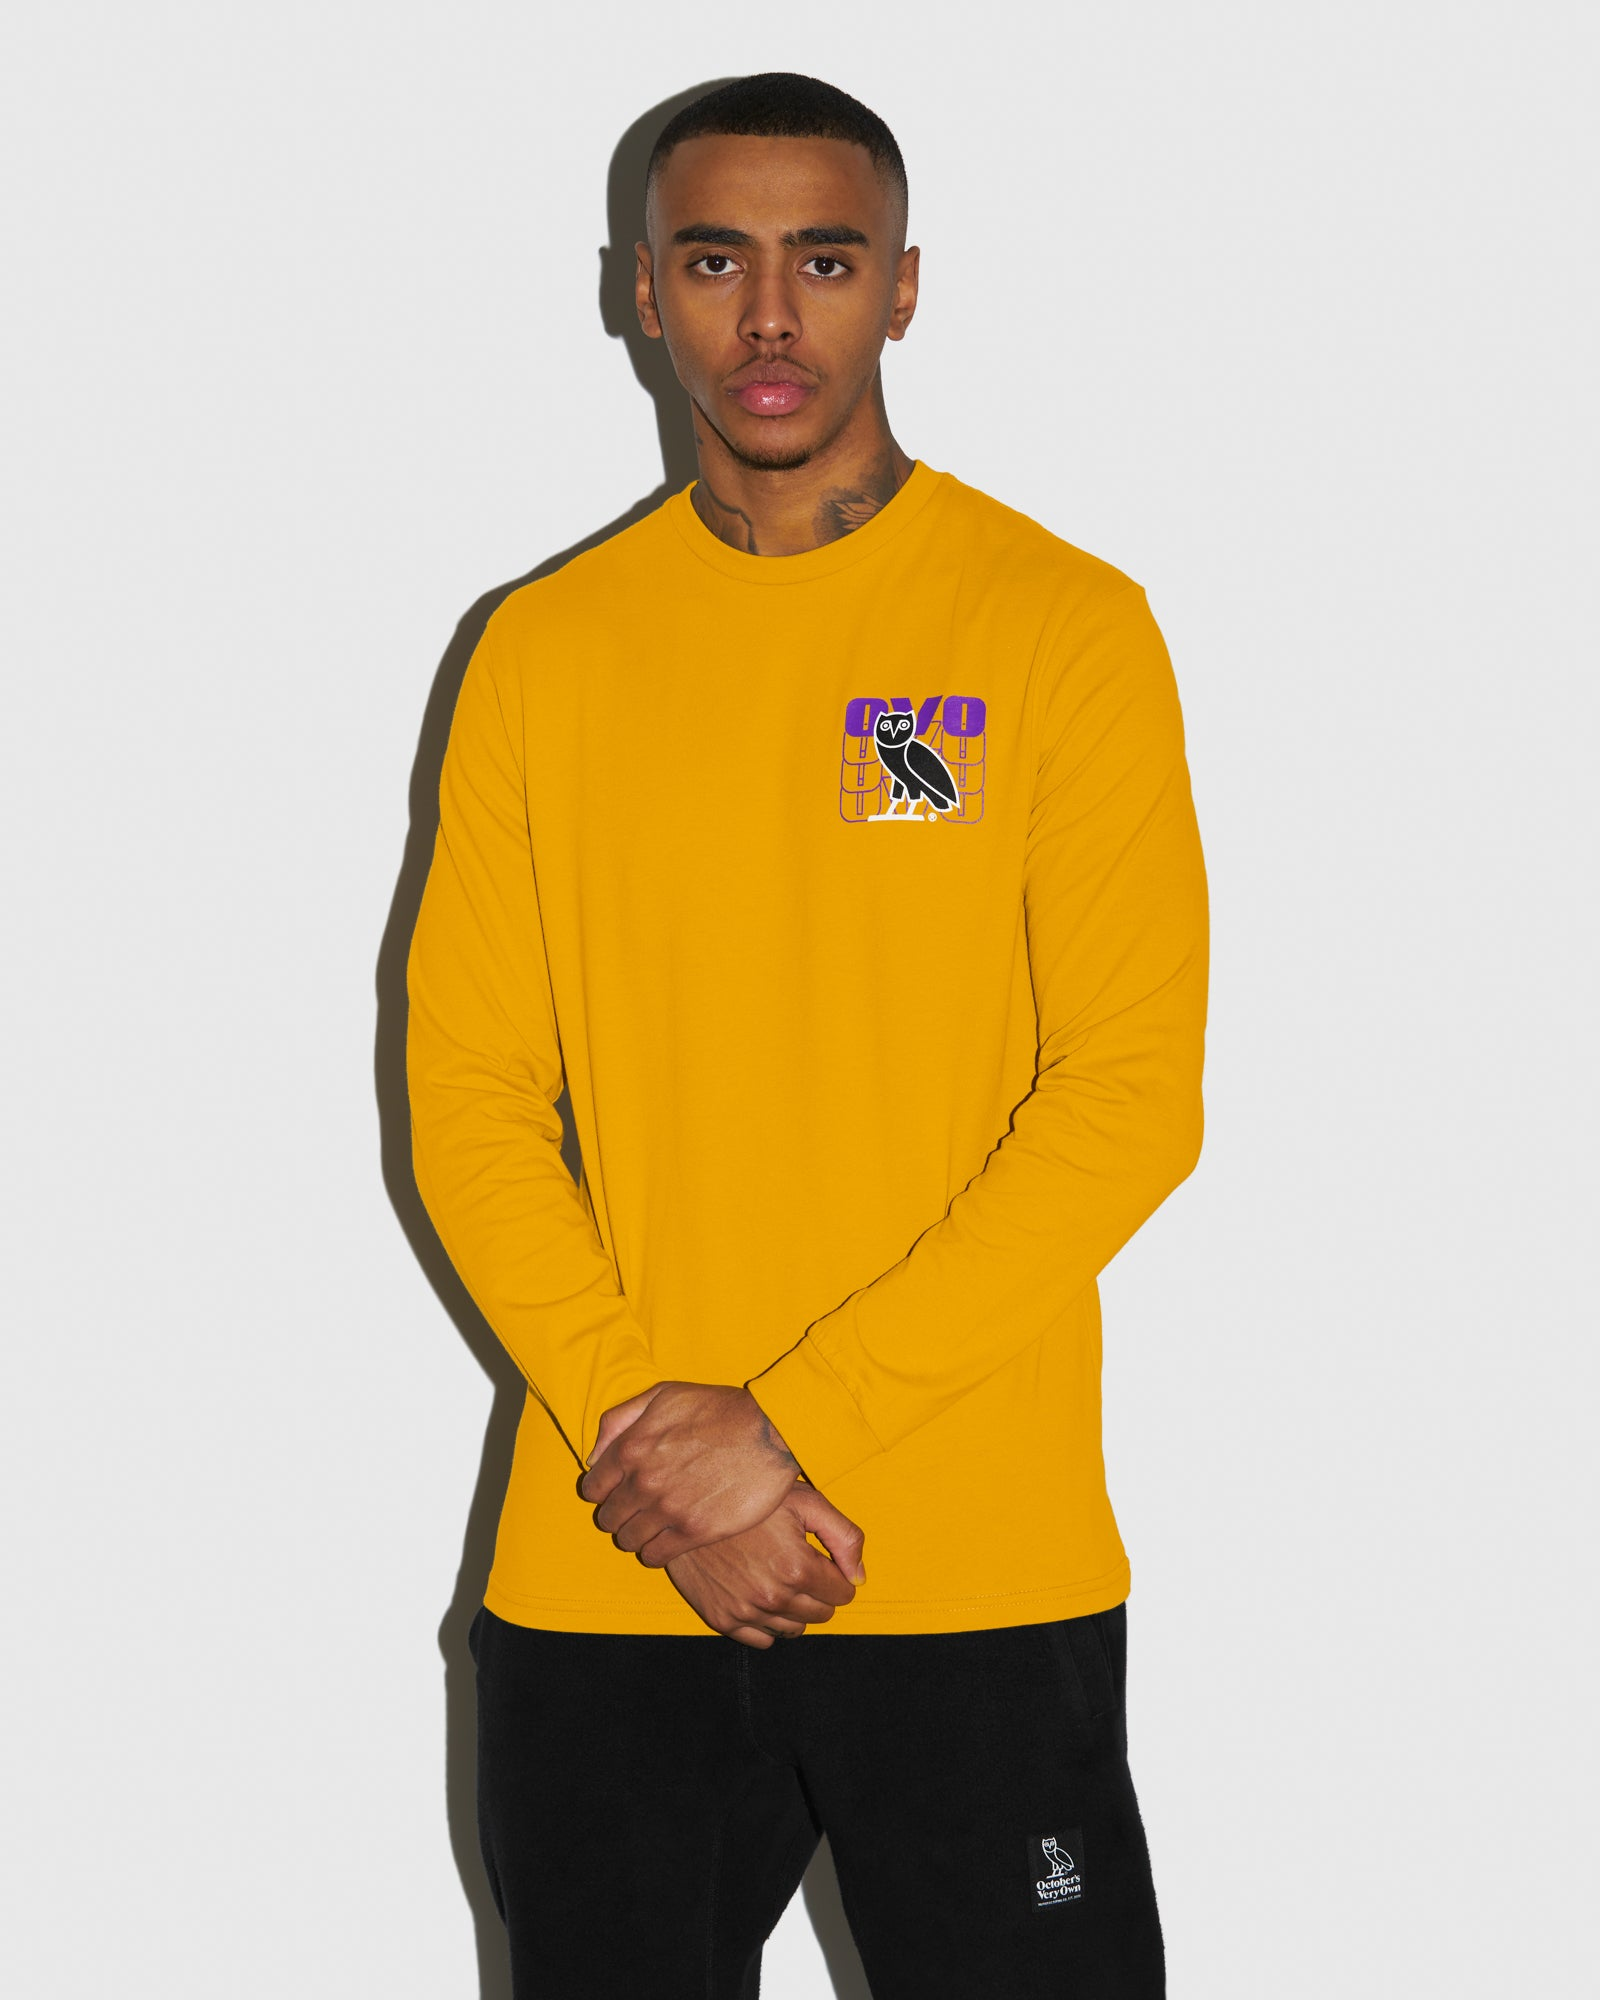 OVO ECHO LONGSLEEVE T-SHIRT - AUTUMN YELLOW IMAGE #2